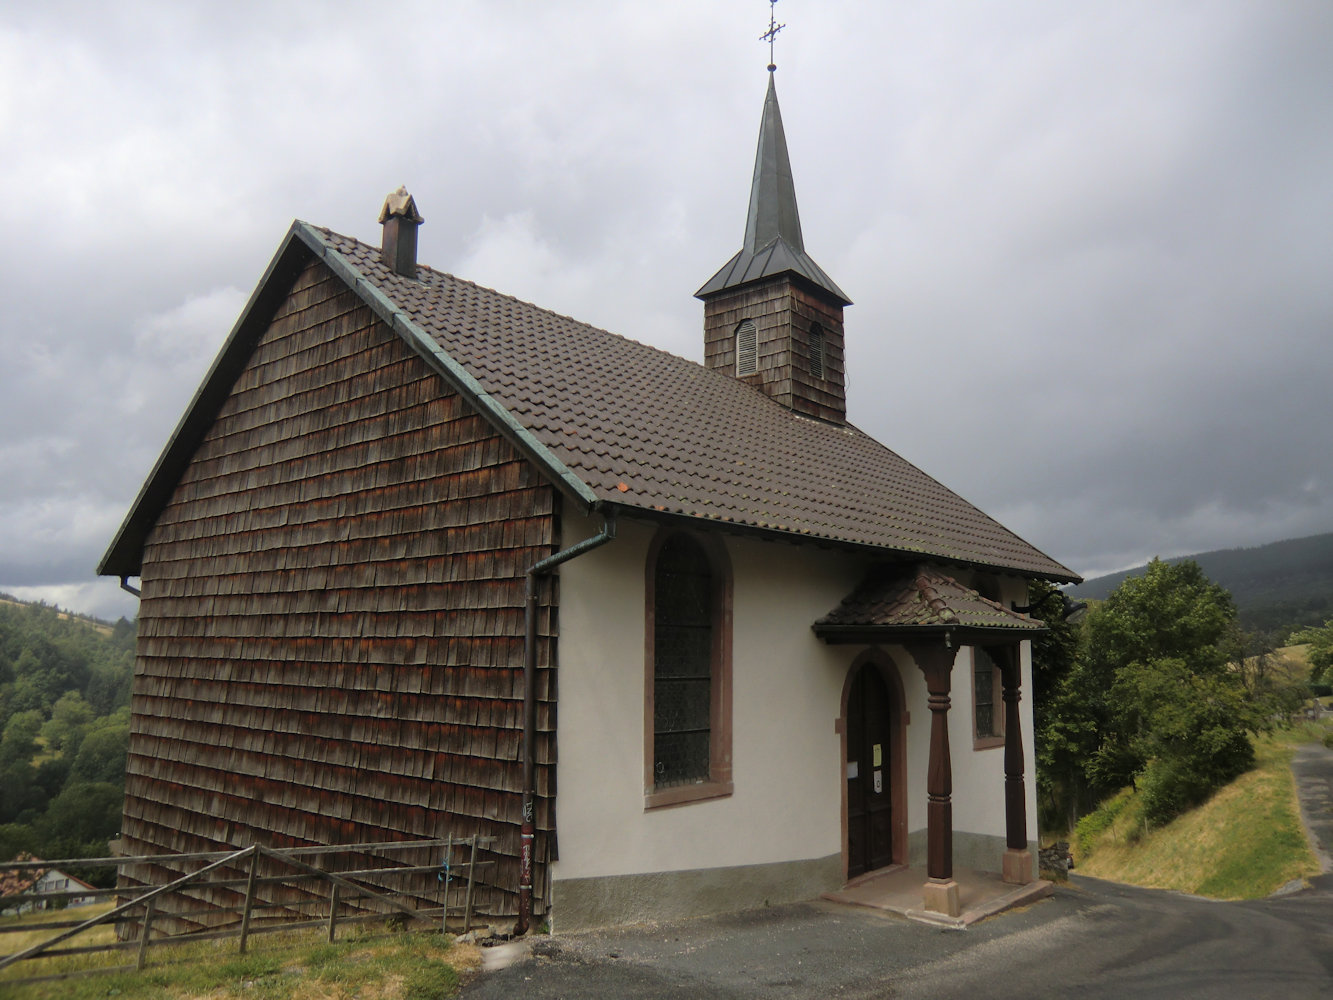 Dorfkirche in Bellefosse